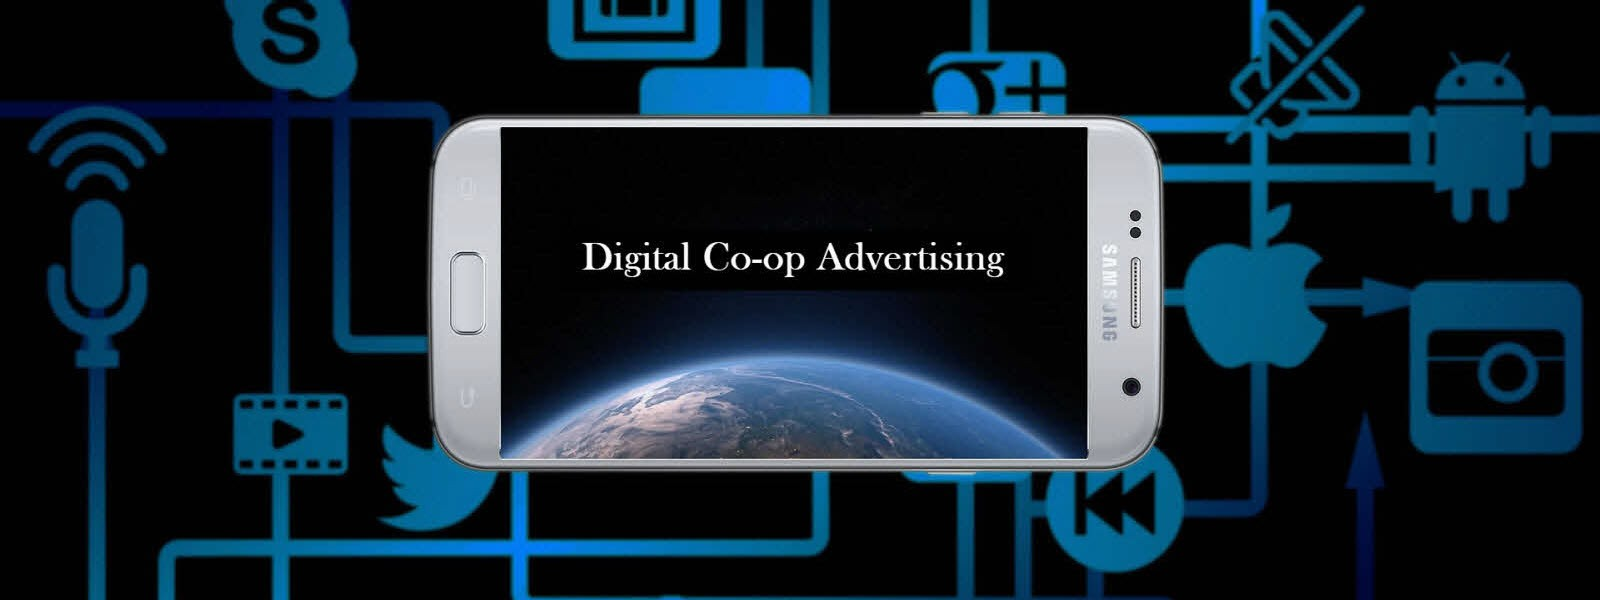 How to Make Online Digital Co-op Advertising Programs Work